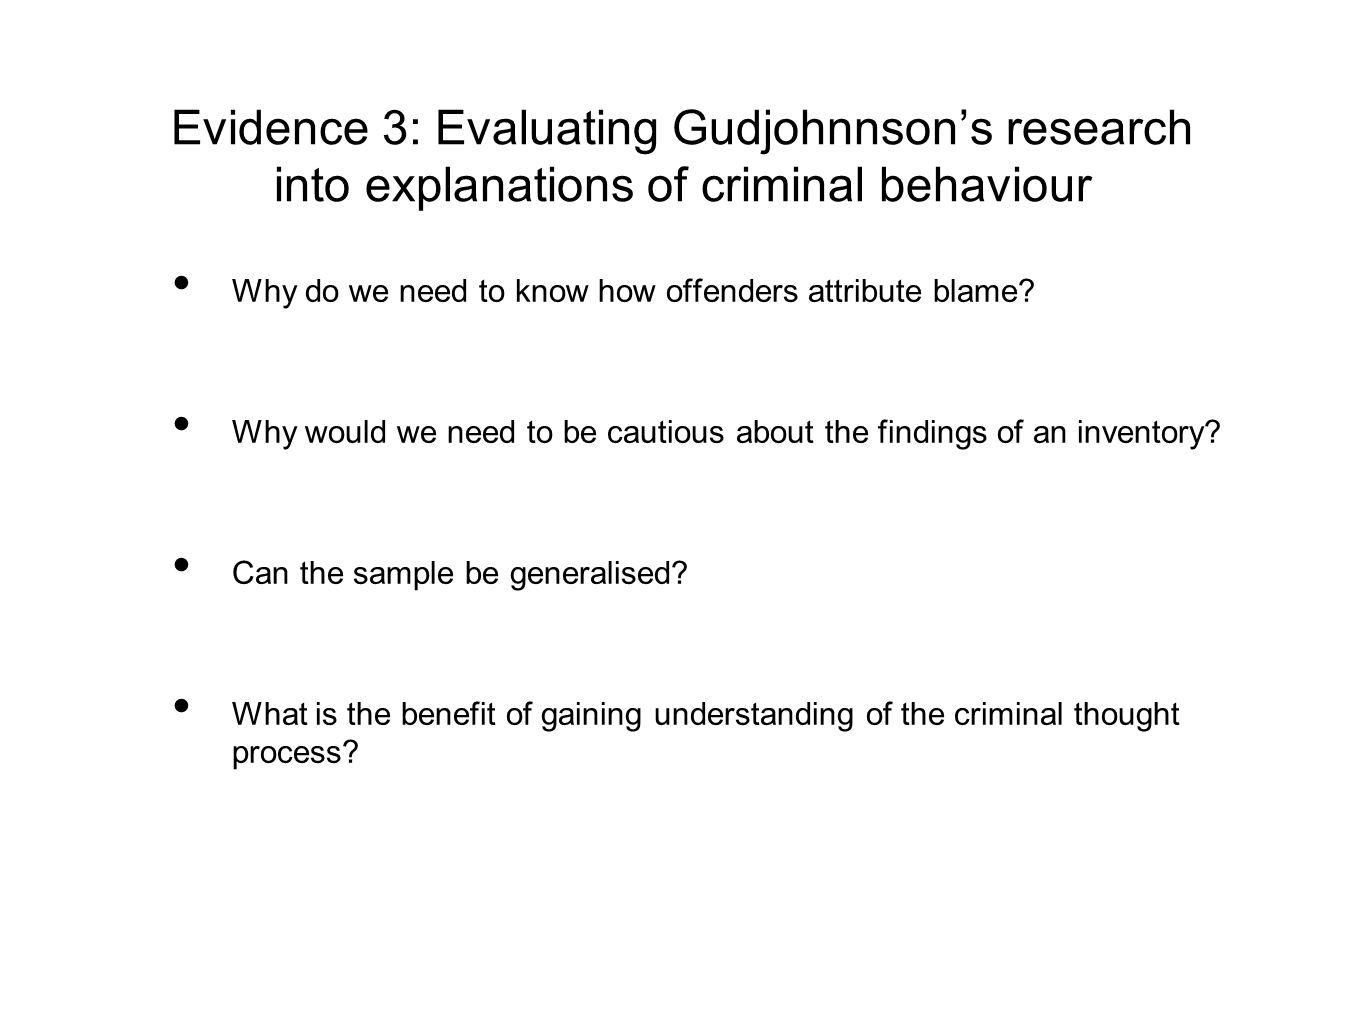 Evidence 3: Evaluating Gudjohnnson's research into explanations of criminal behaviour Why do we need to know how offenders attribute blame? Why would